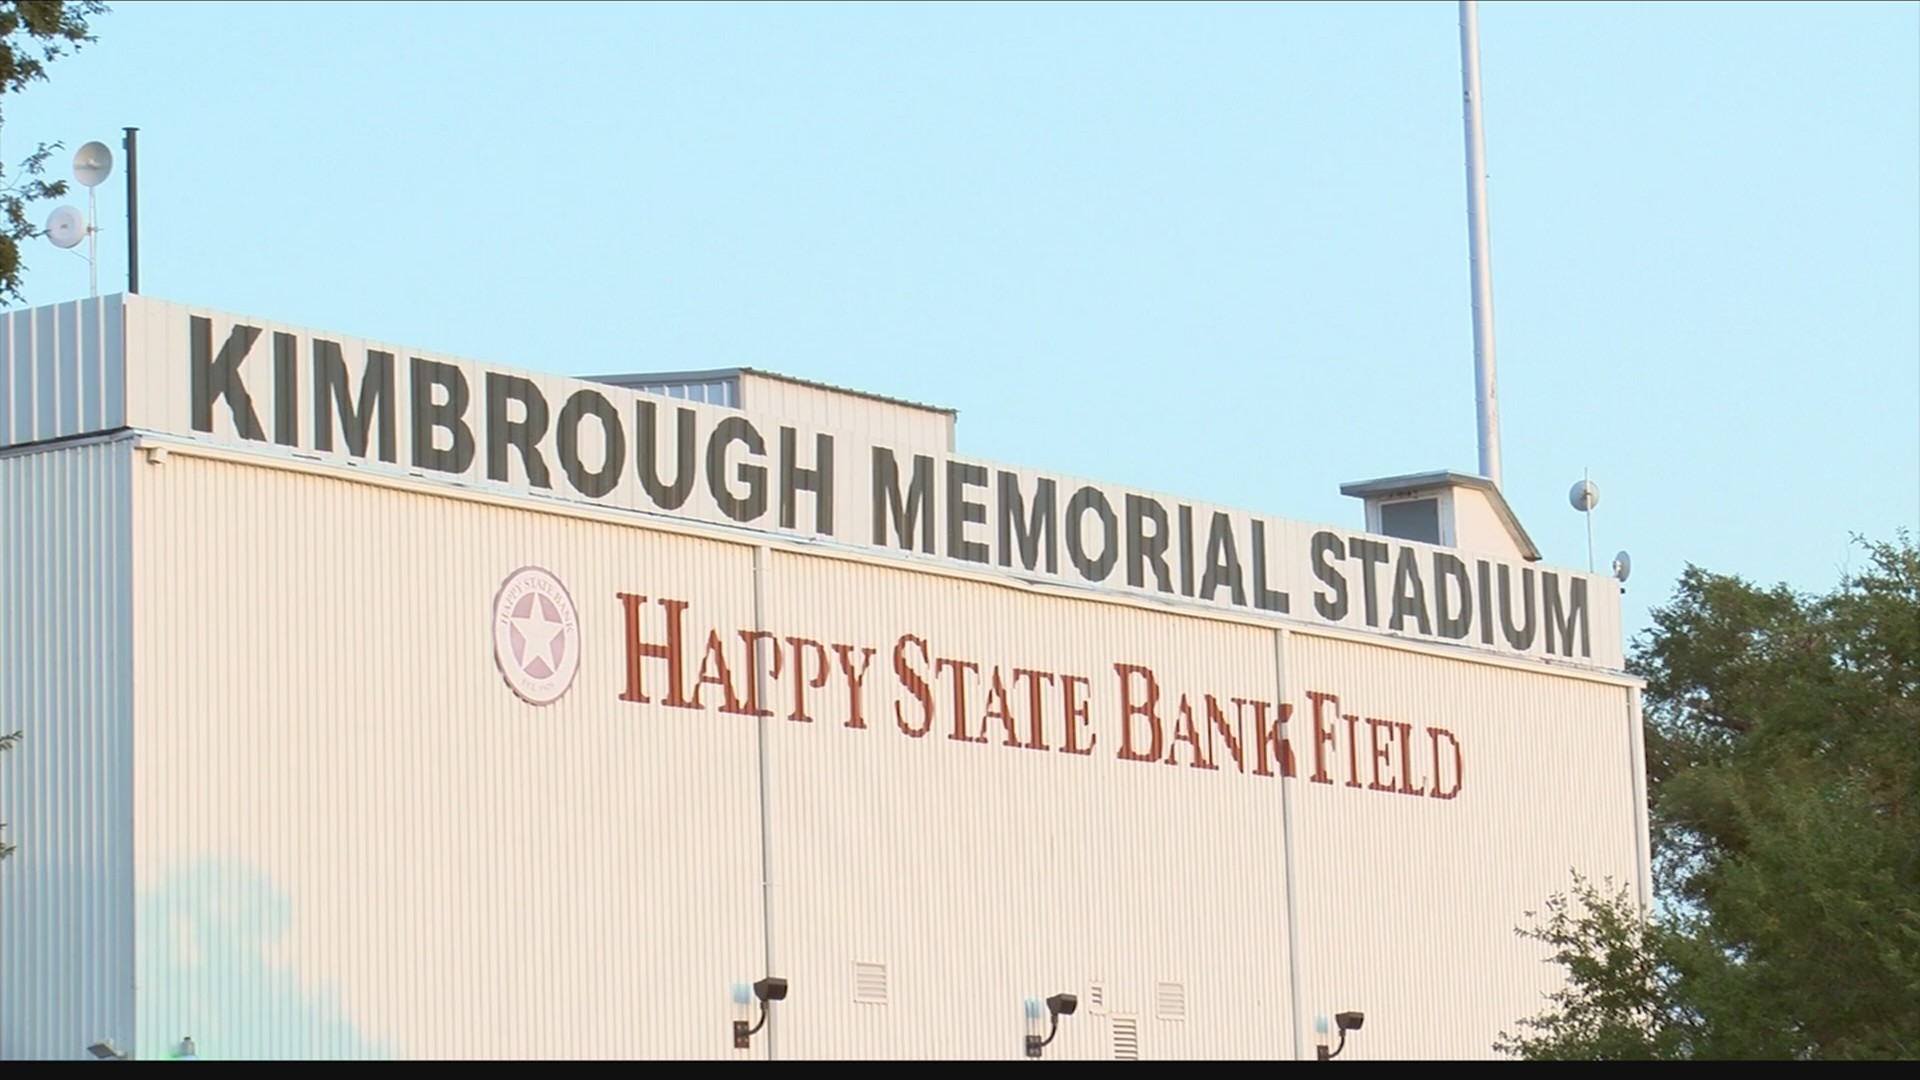 Randall County Historical Commission Proposes Name Change to Kimbrough Memorial Stadium